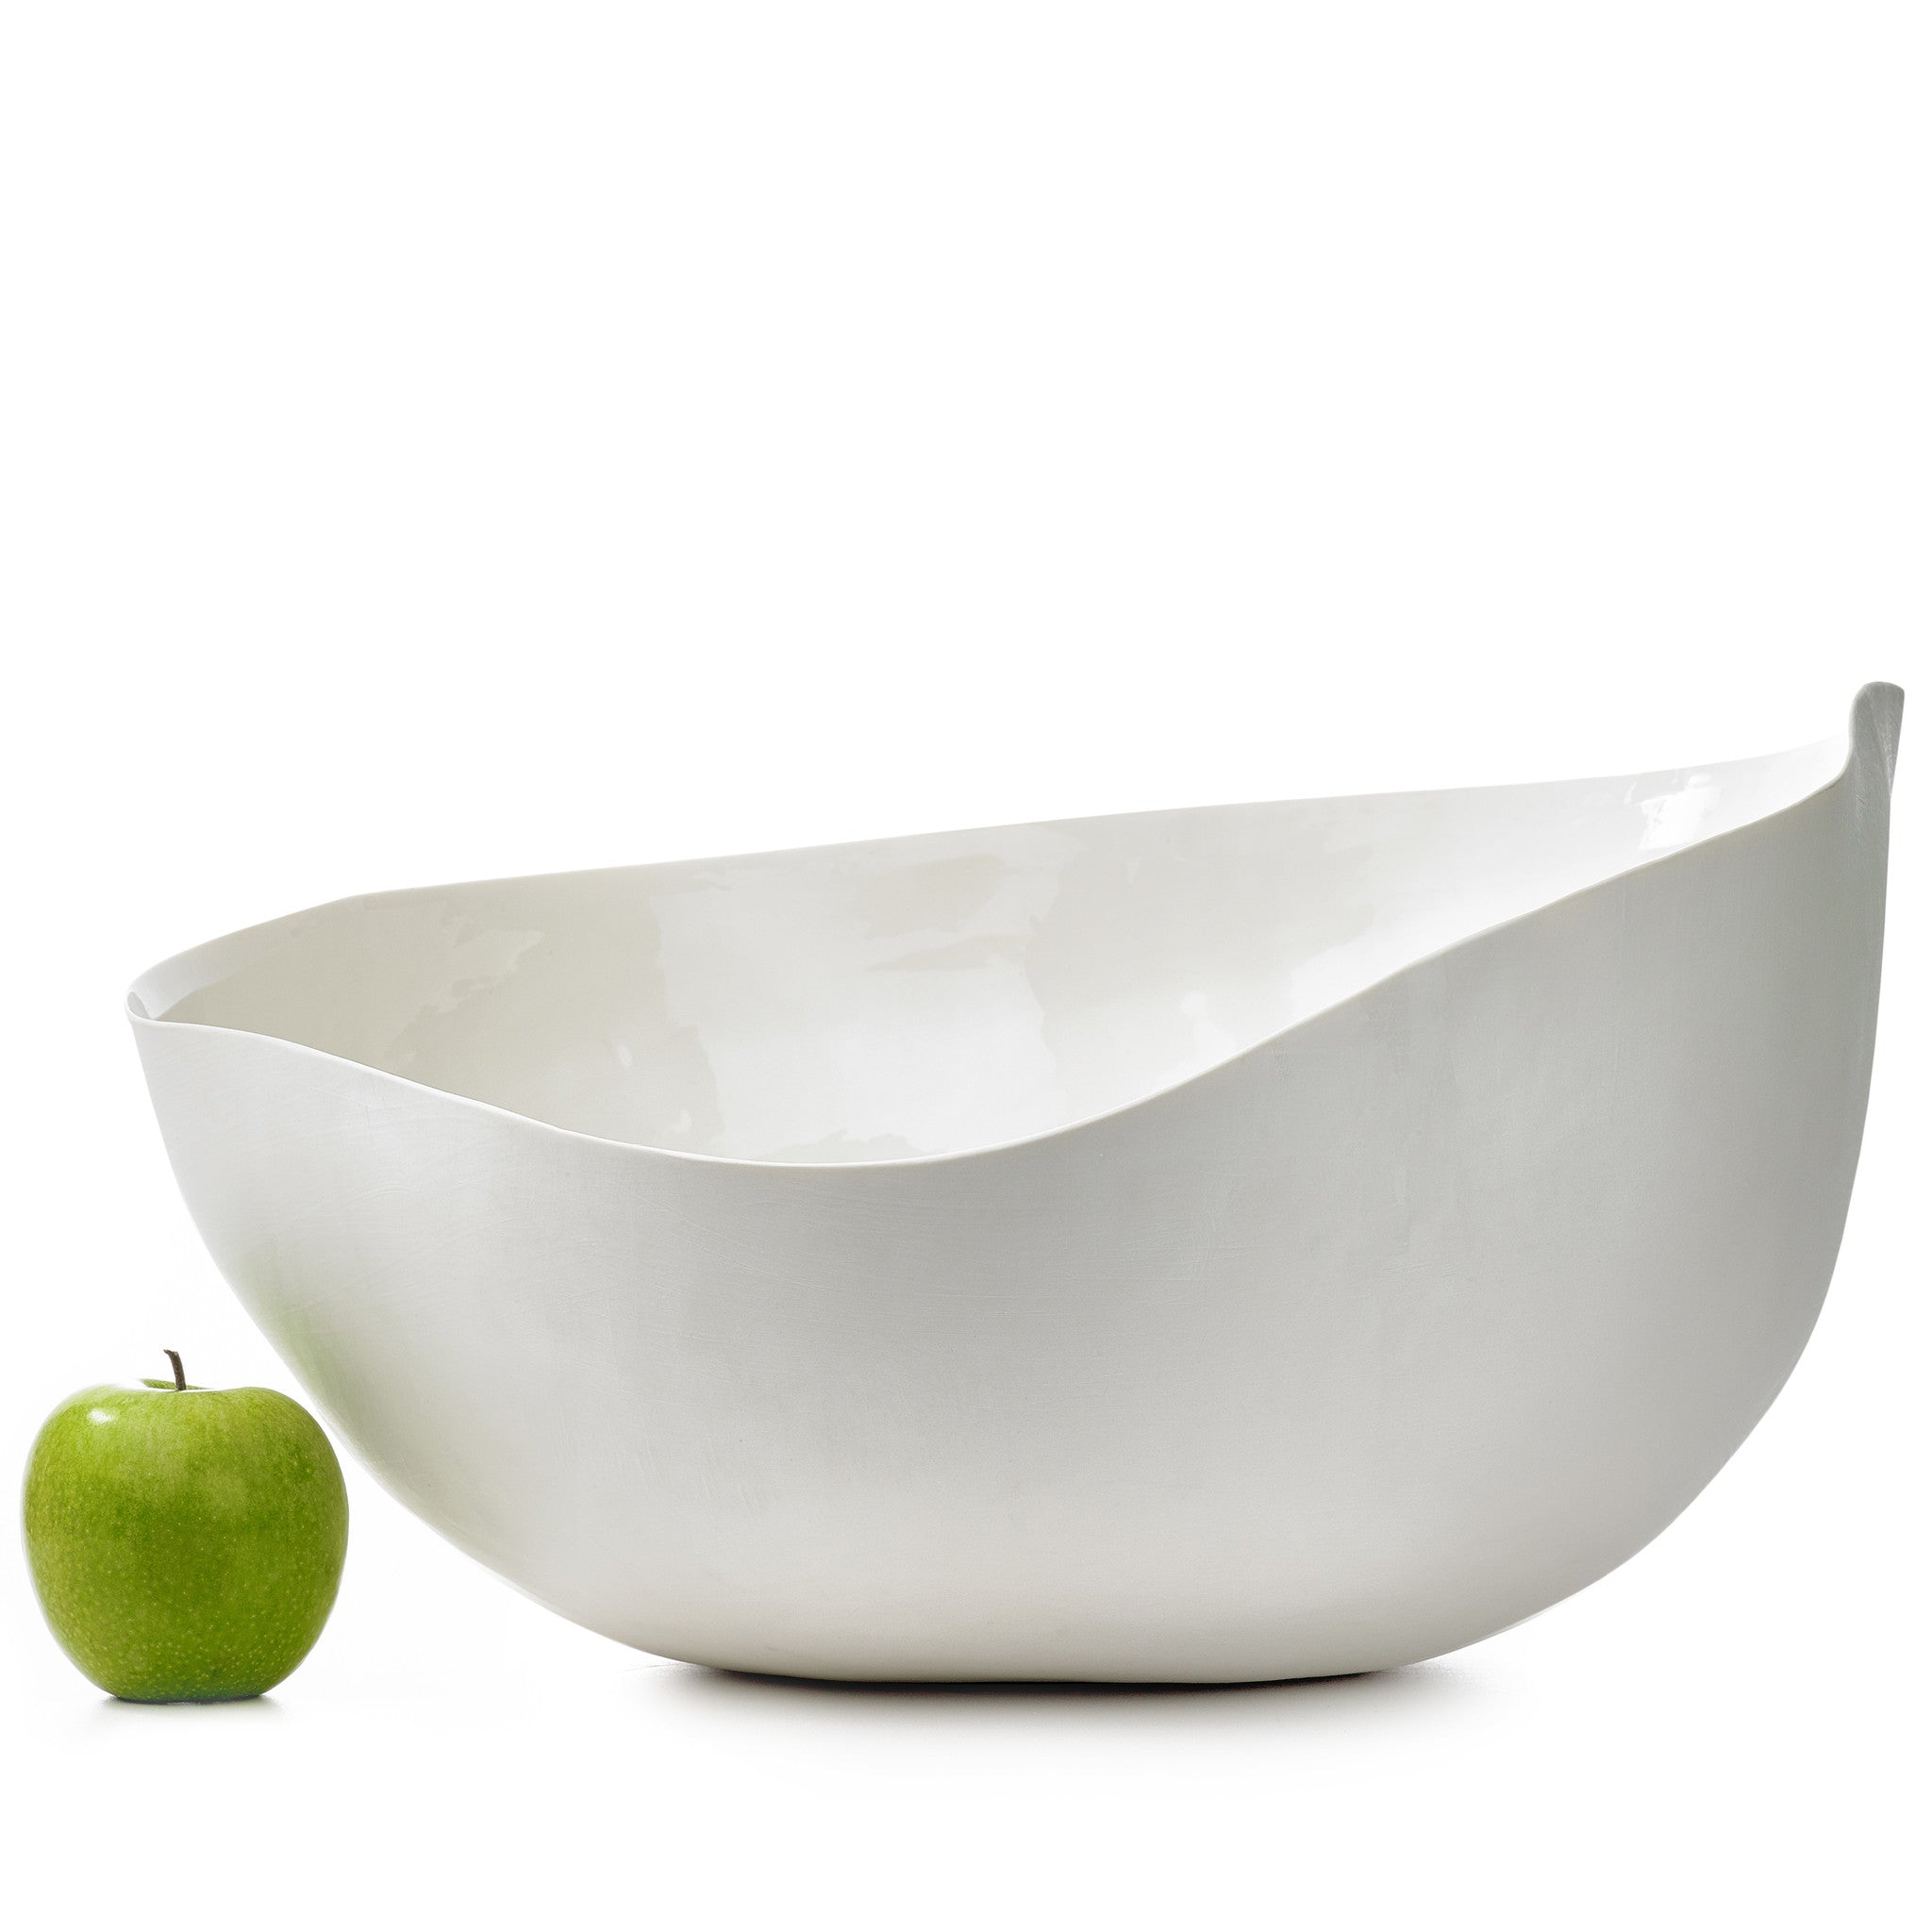 S&B Handmade 50cm Porcelain Giant Salad Bowl with Plain Rim